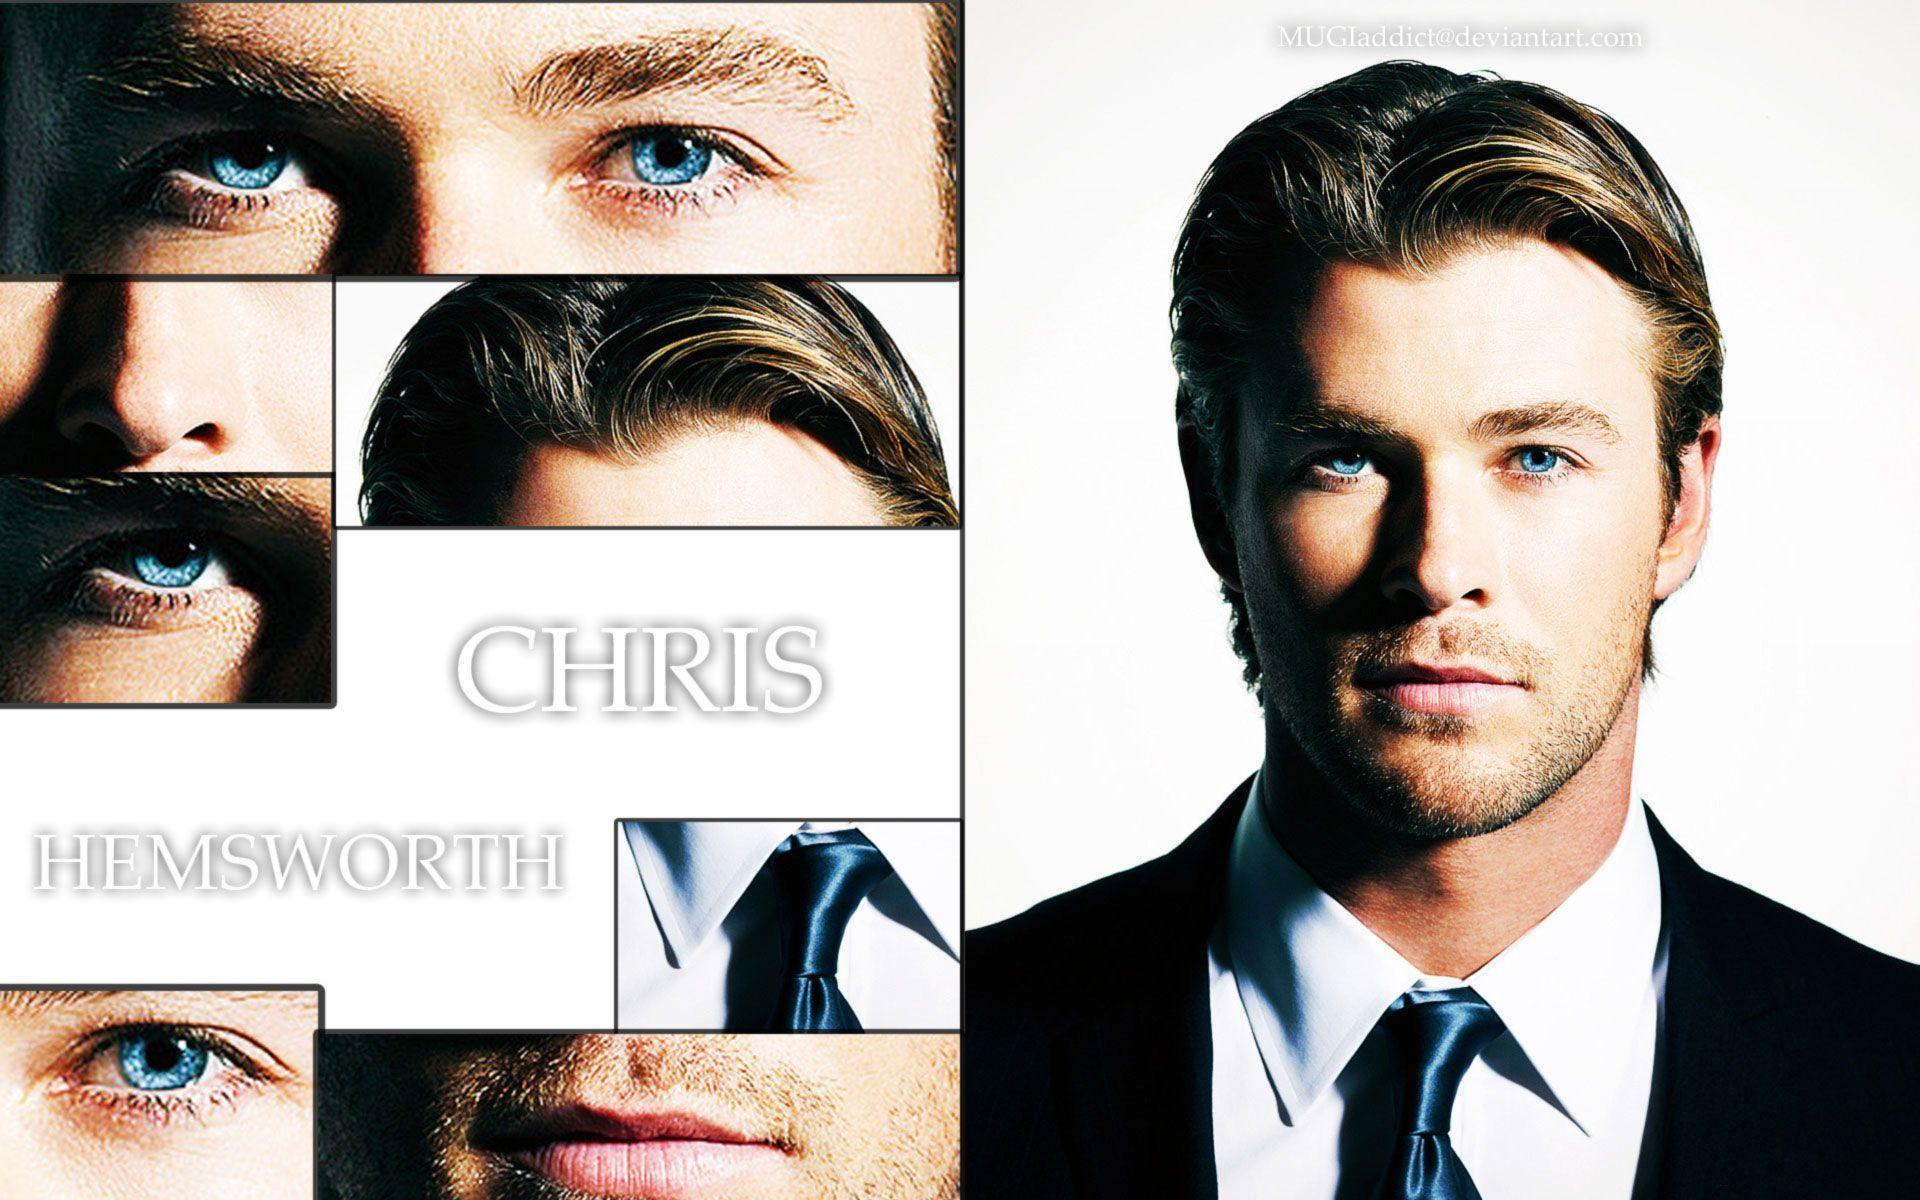 Chris Hemsworth Backgrounds Group